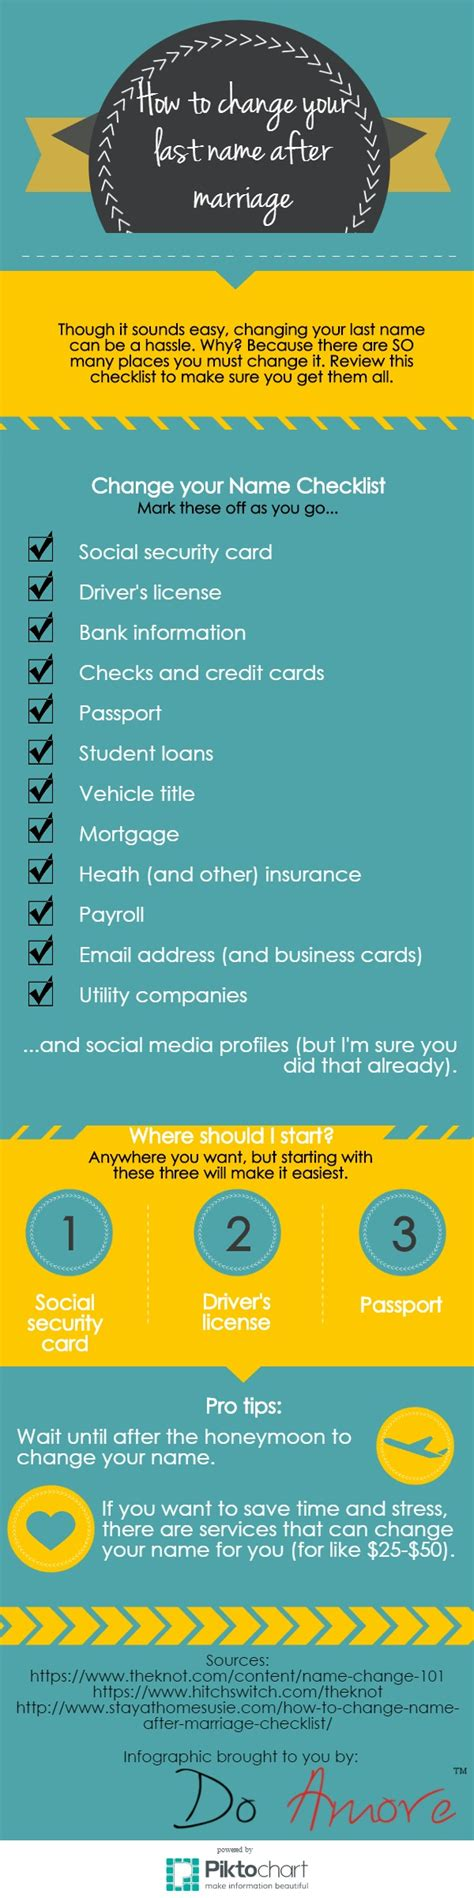 men changing their last names a practical wedding blog how to change your last name after marriage infographic